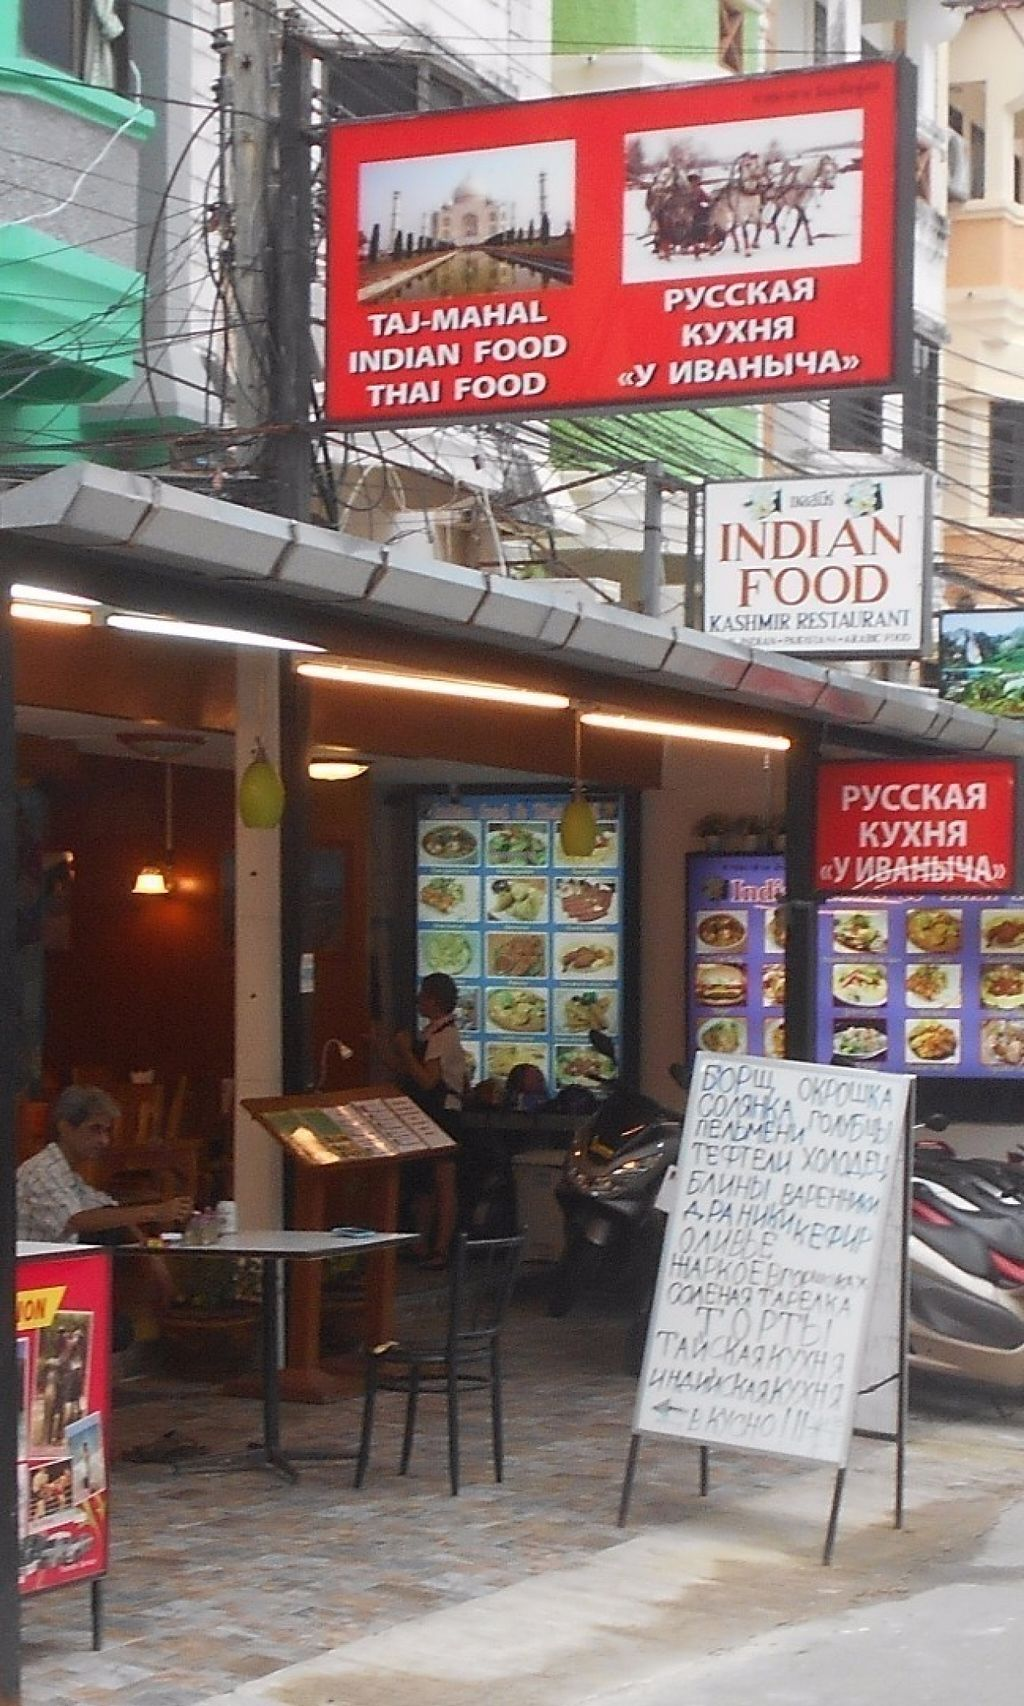 """Photo of Kashmir Indian Restaurant  by <a href=""""/members/profile/Kelly%20Kelly"""">Kelly Kelly</a> <br/>Kashmir Indian Restaurant <br/> August 5, 2016  - <a href='/contact/abuse/image/77951/165806'>Report</a>"""